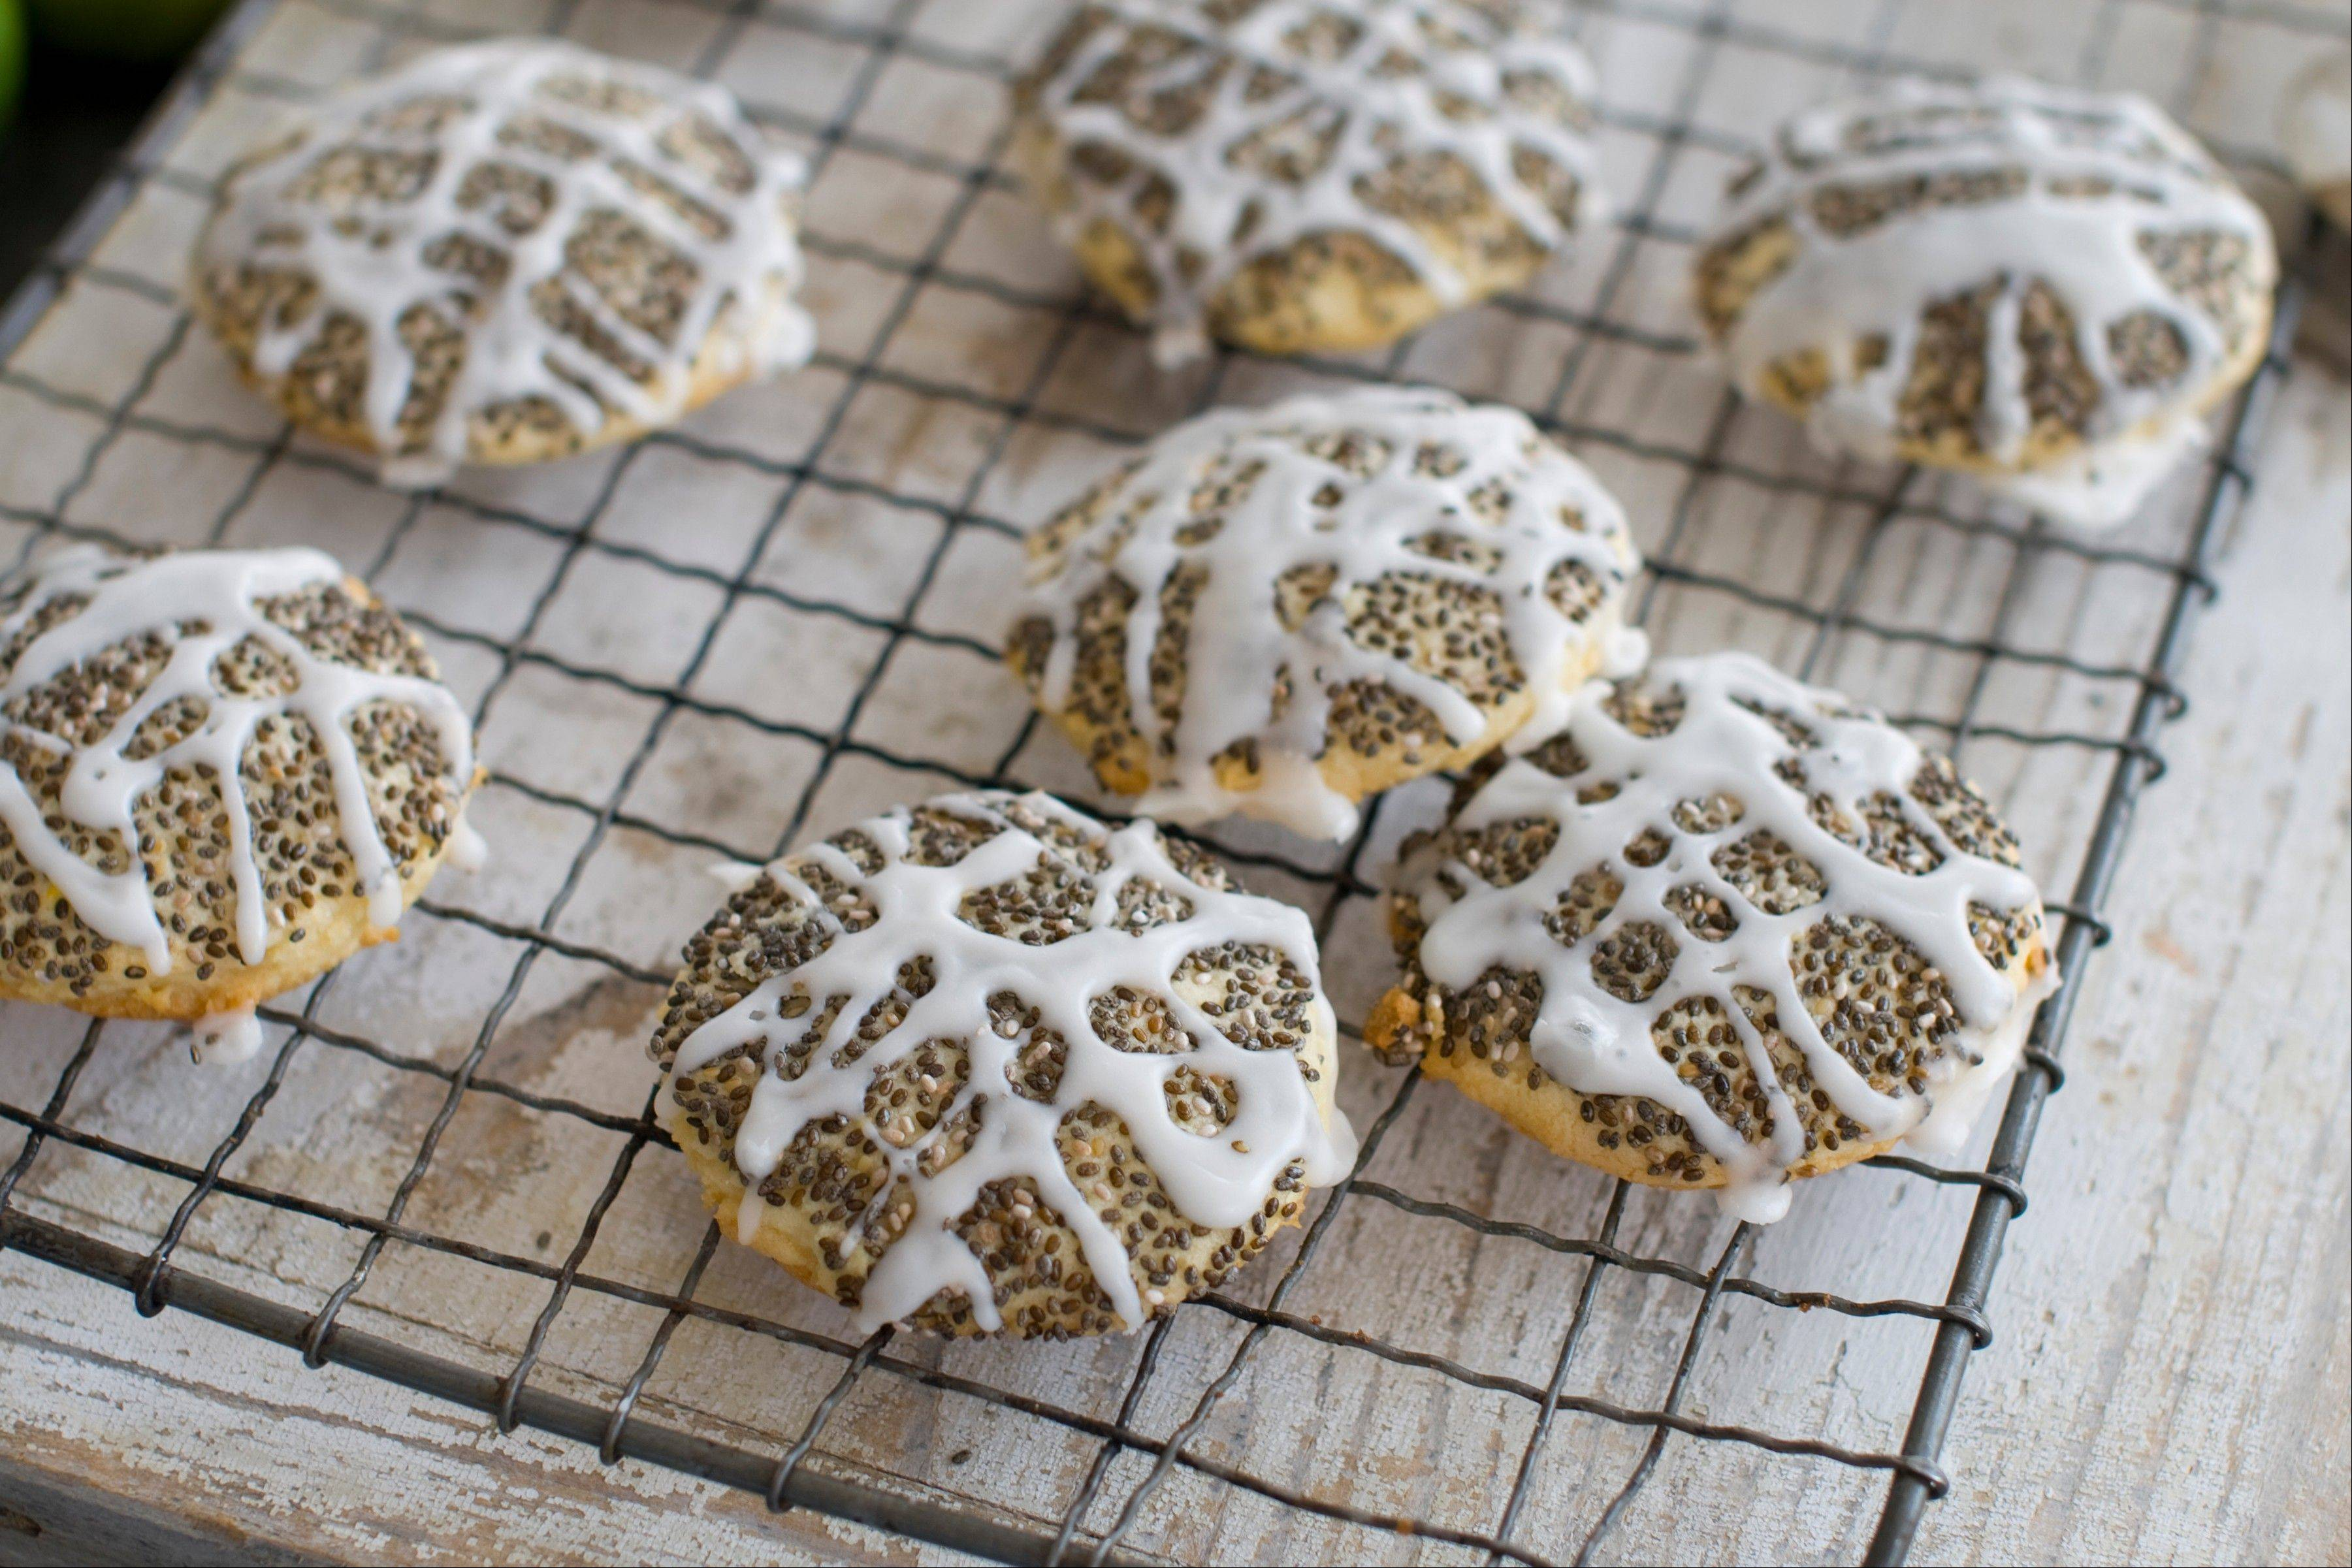 Cookies topped with a lemon glaze and chia seeds show that these tiny seeds are good for more than adorning clay critters.